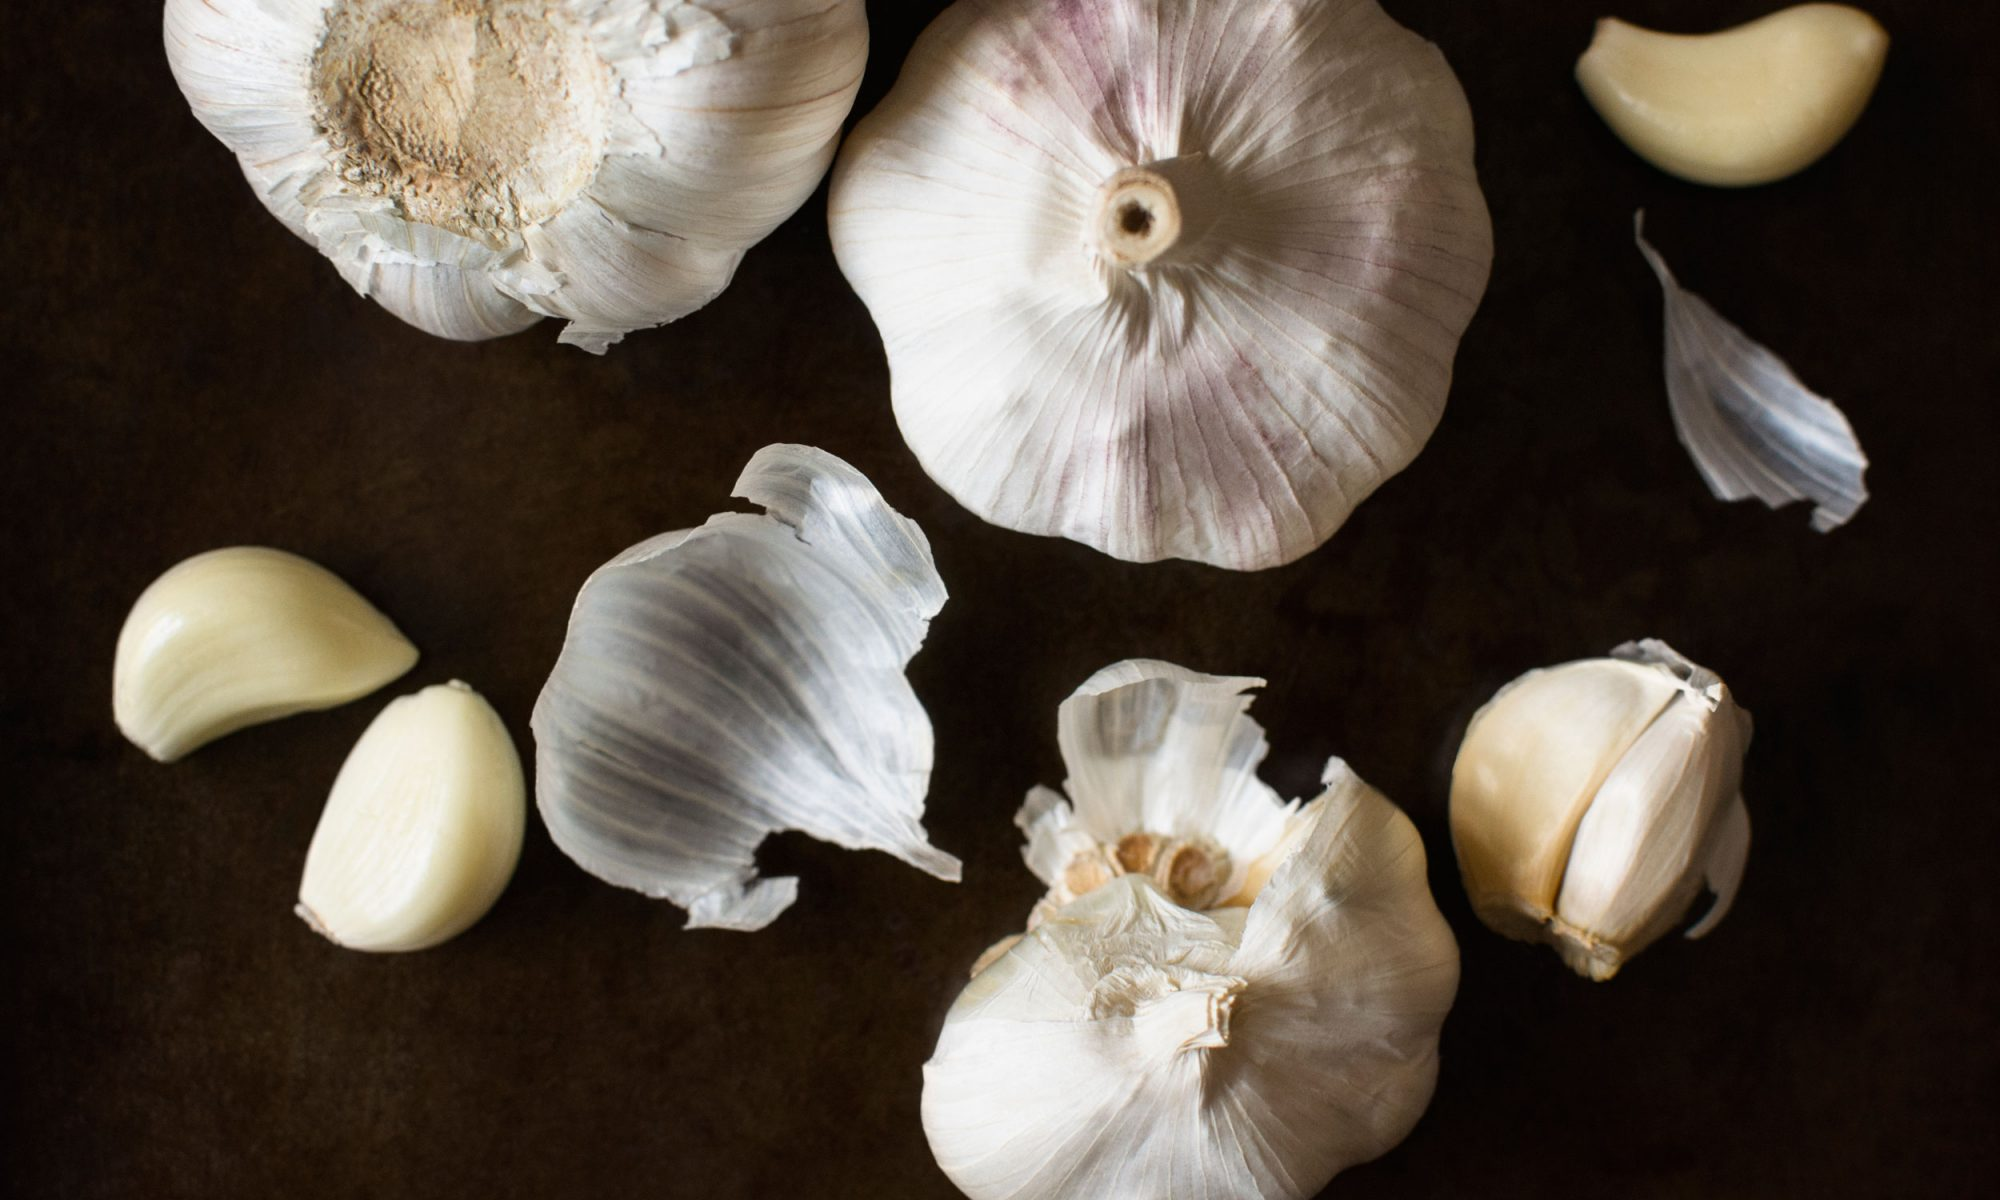 EC: 6 Great Garlic Gadgets to Make Peeling, Slicing, and Mincing So Much Easier